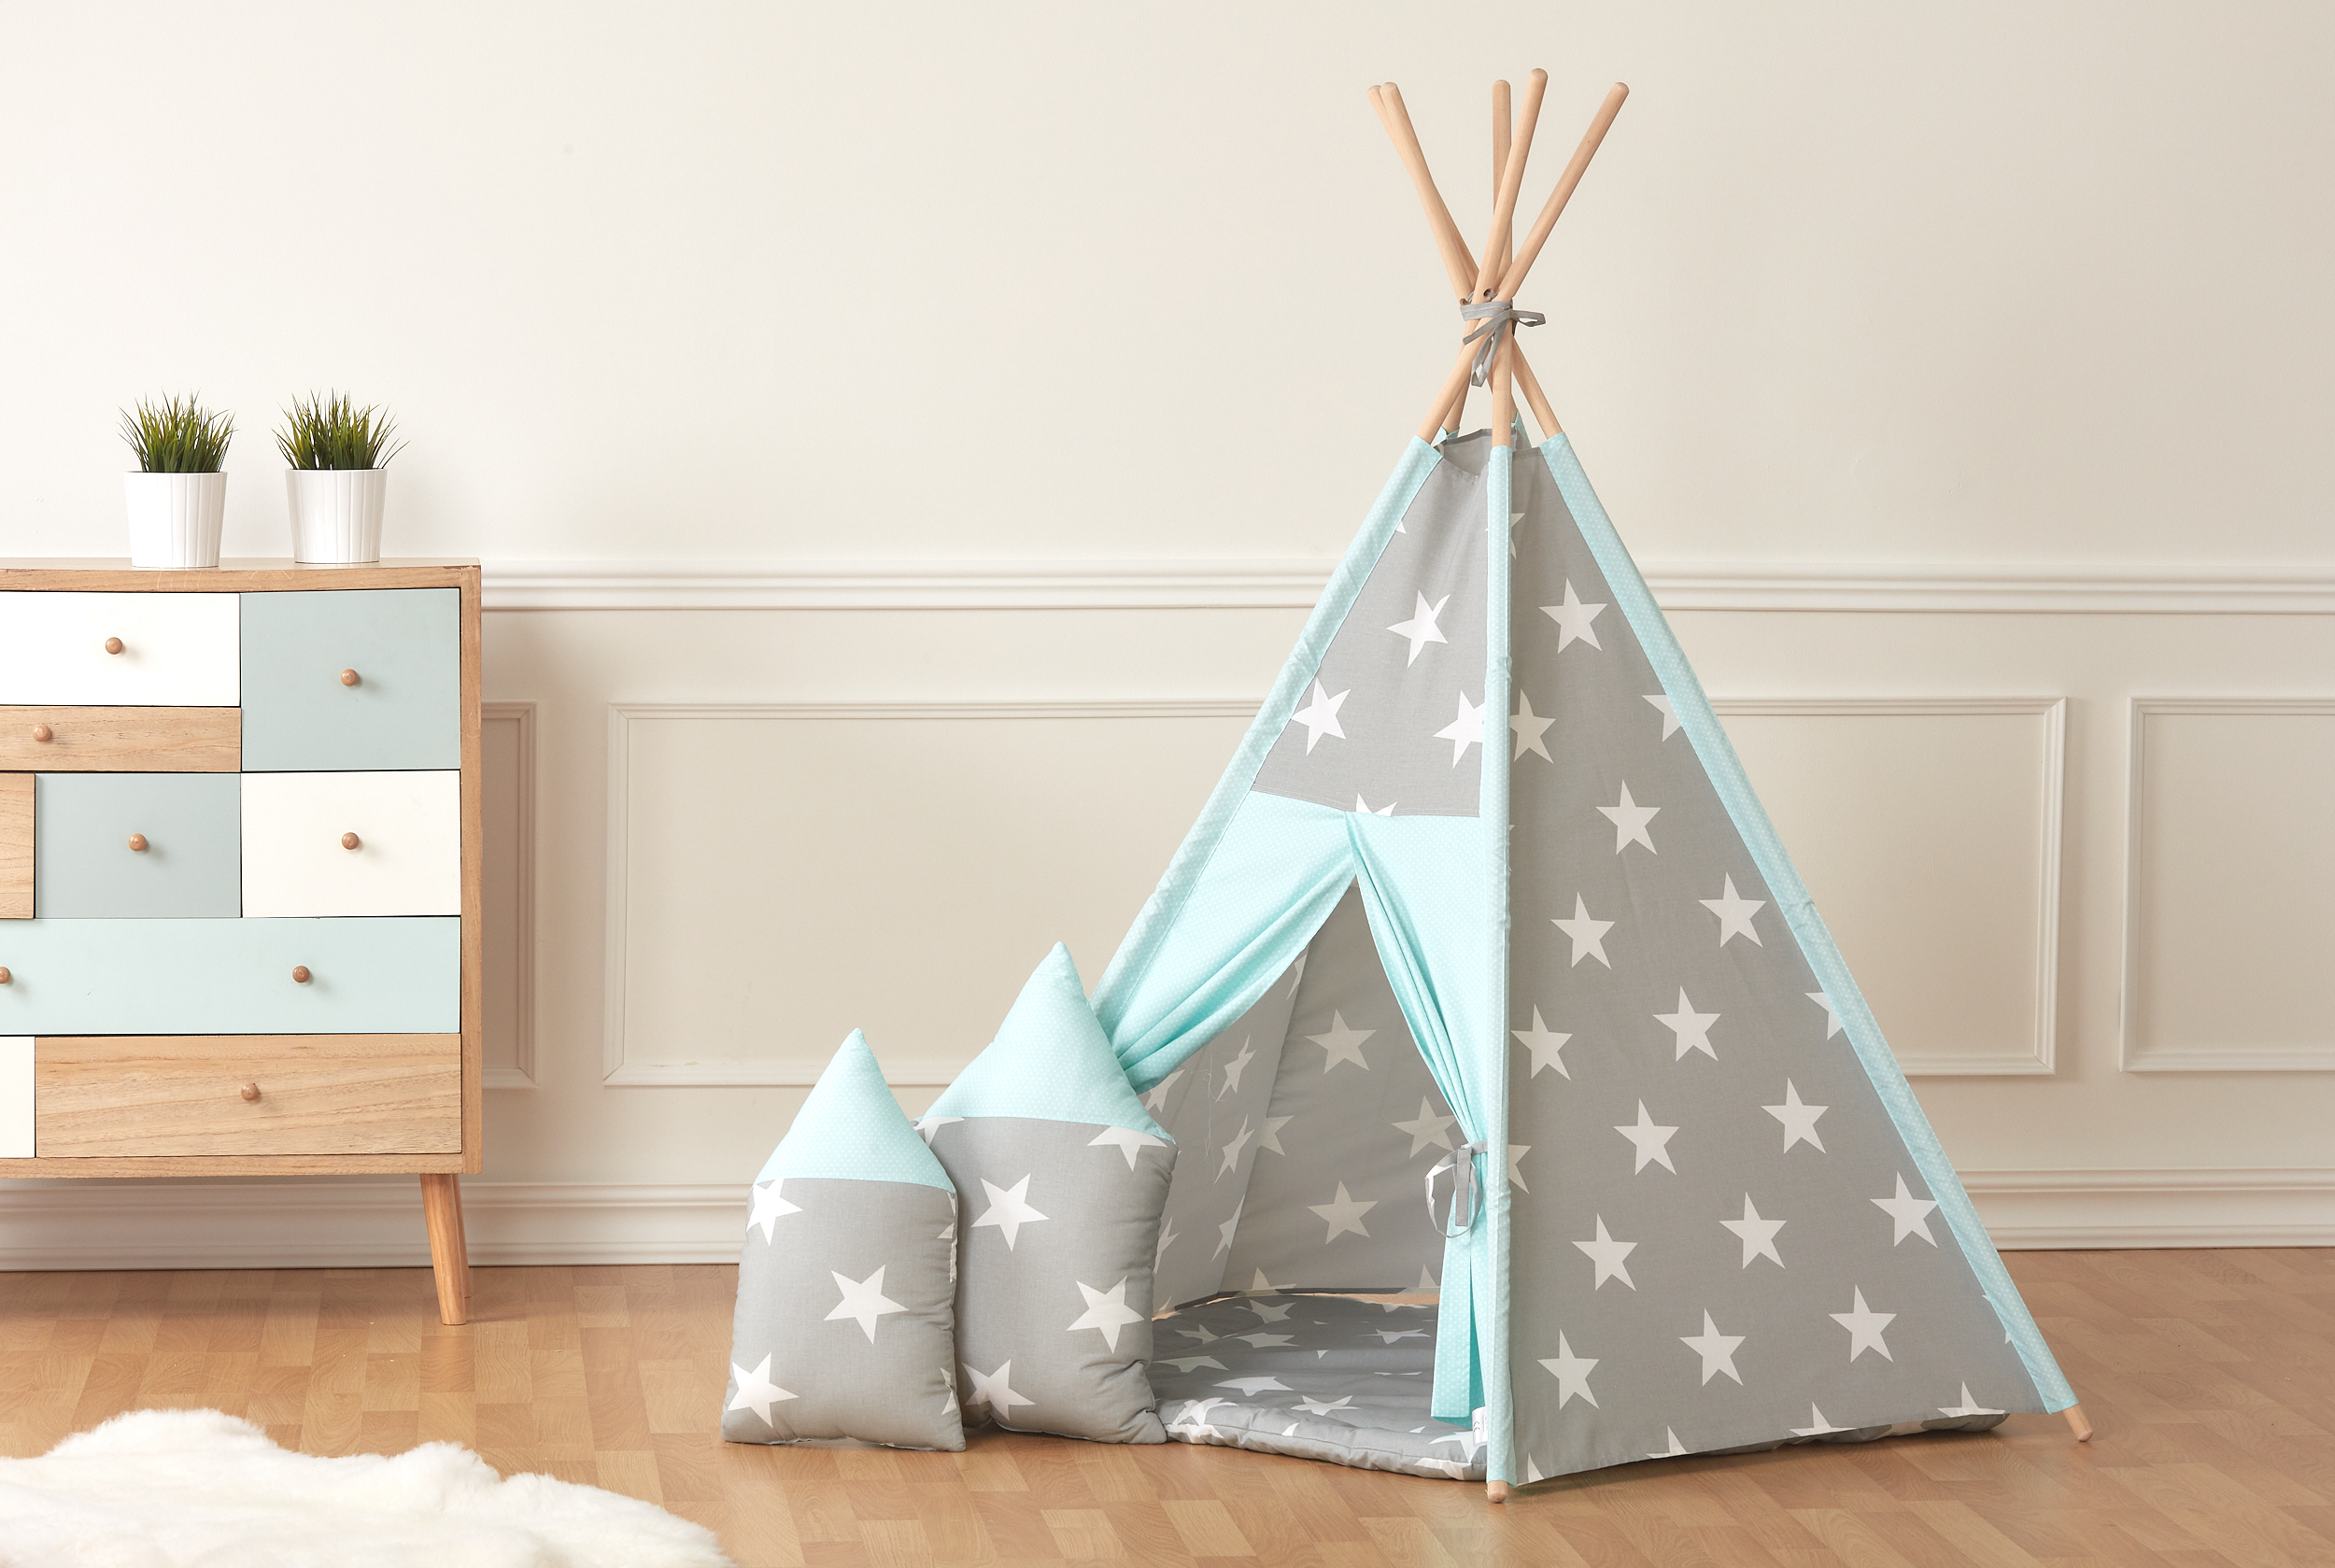 kraftkids spielzelt tipi gro e wei e sterne auf grau und. Black Bedroom Furniture Sets. Home Design Ideas